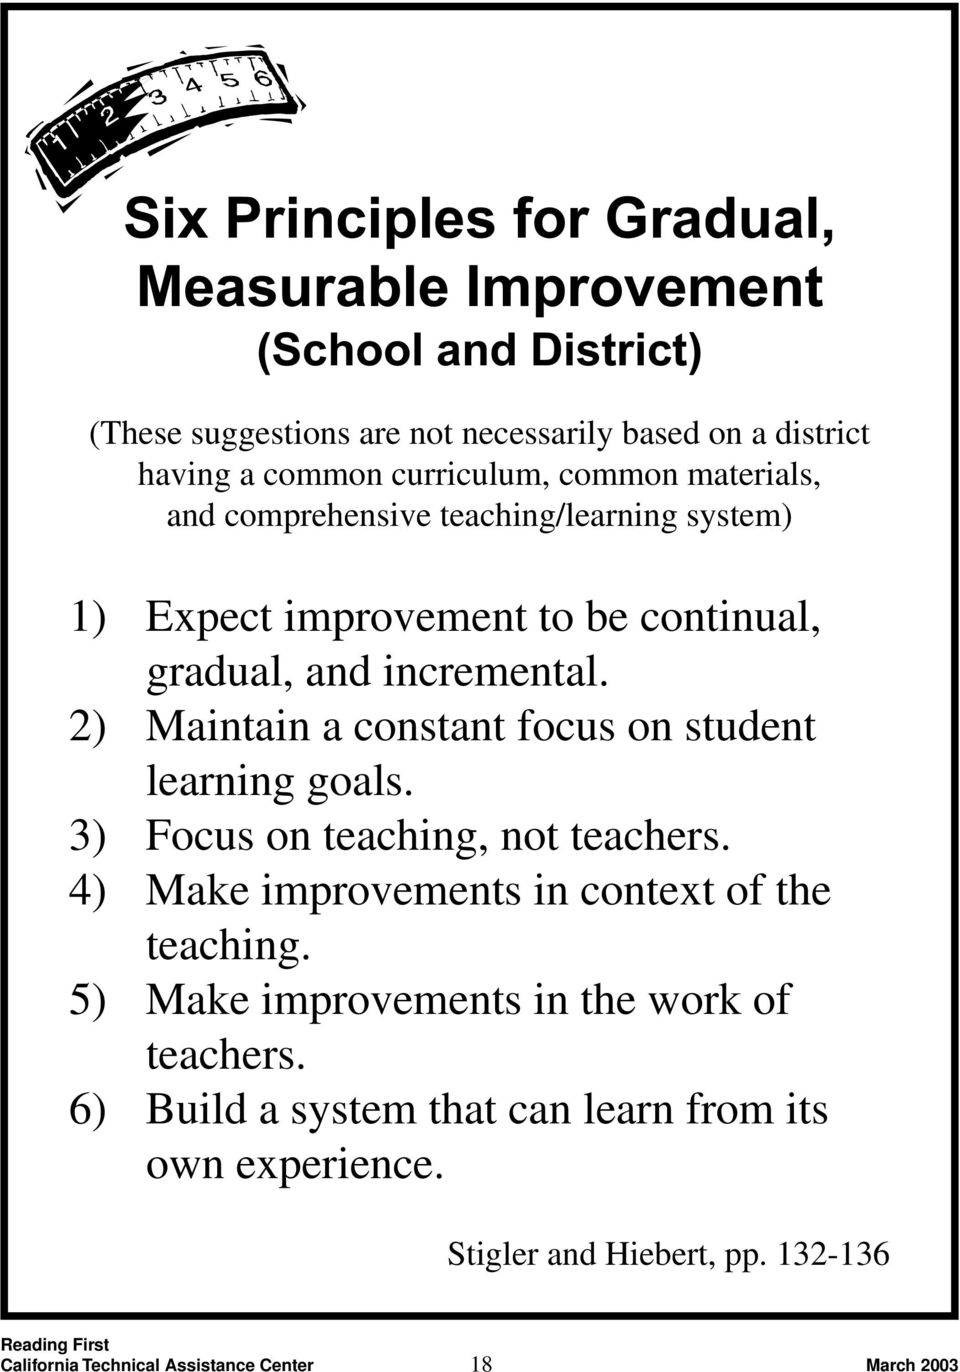 incremental. 2) Maintain a constant focus on student learning goals. 3) Focus on teaching, not teachers.